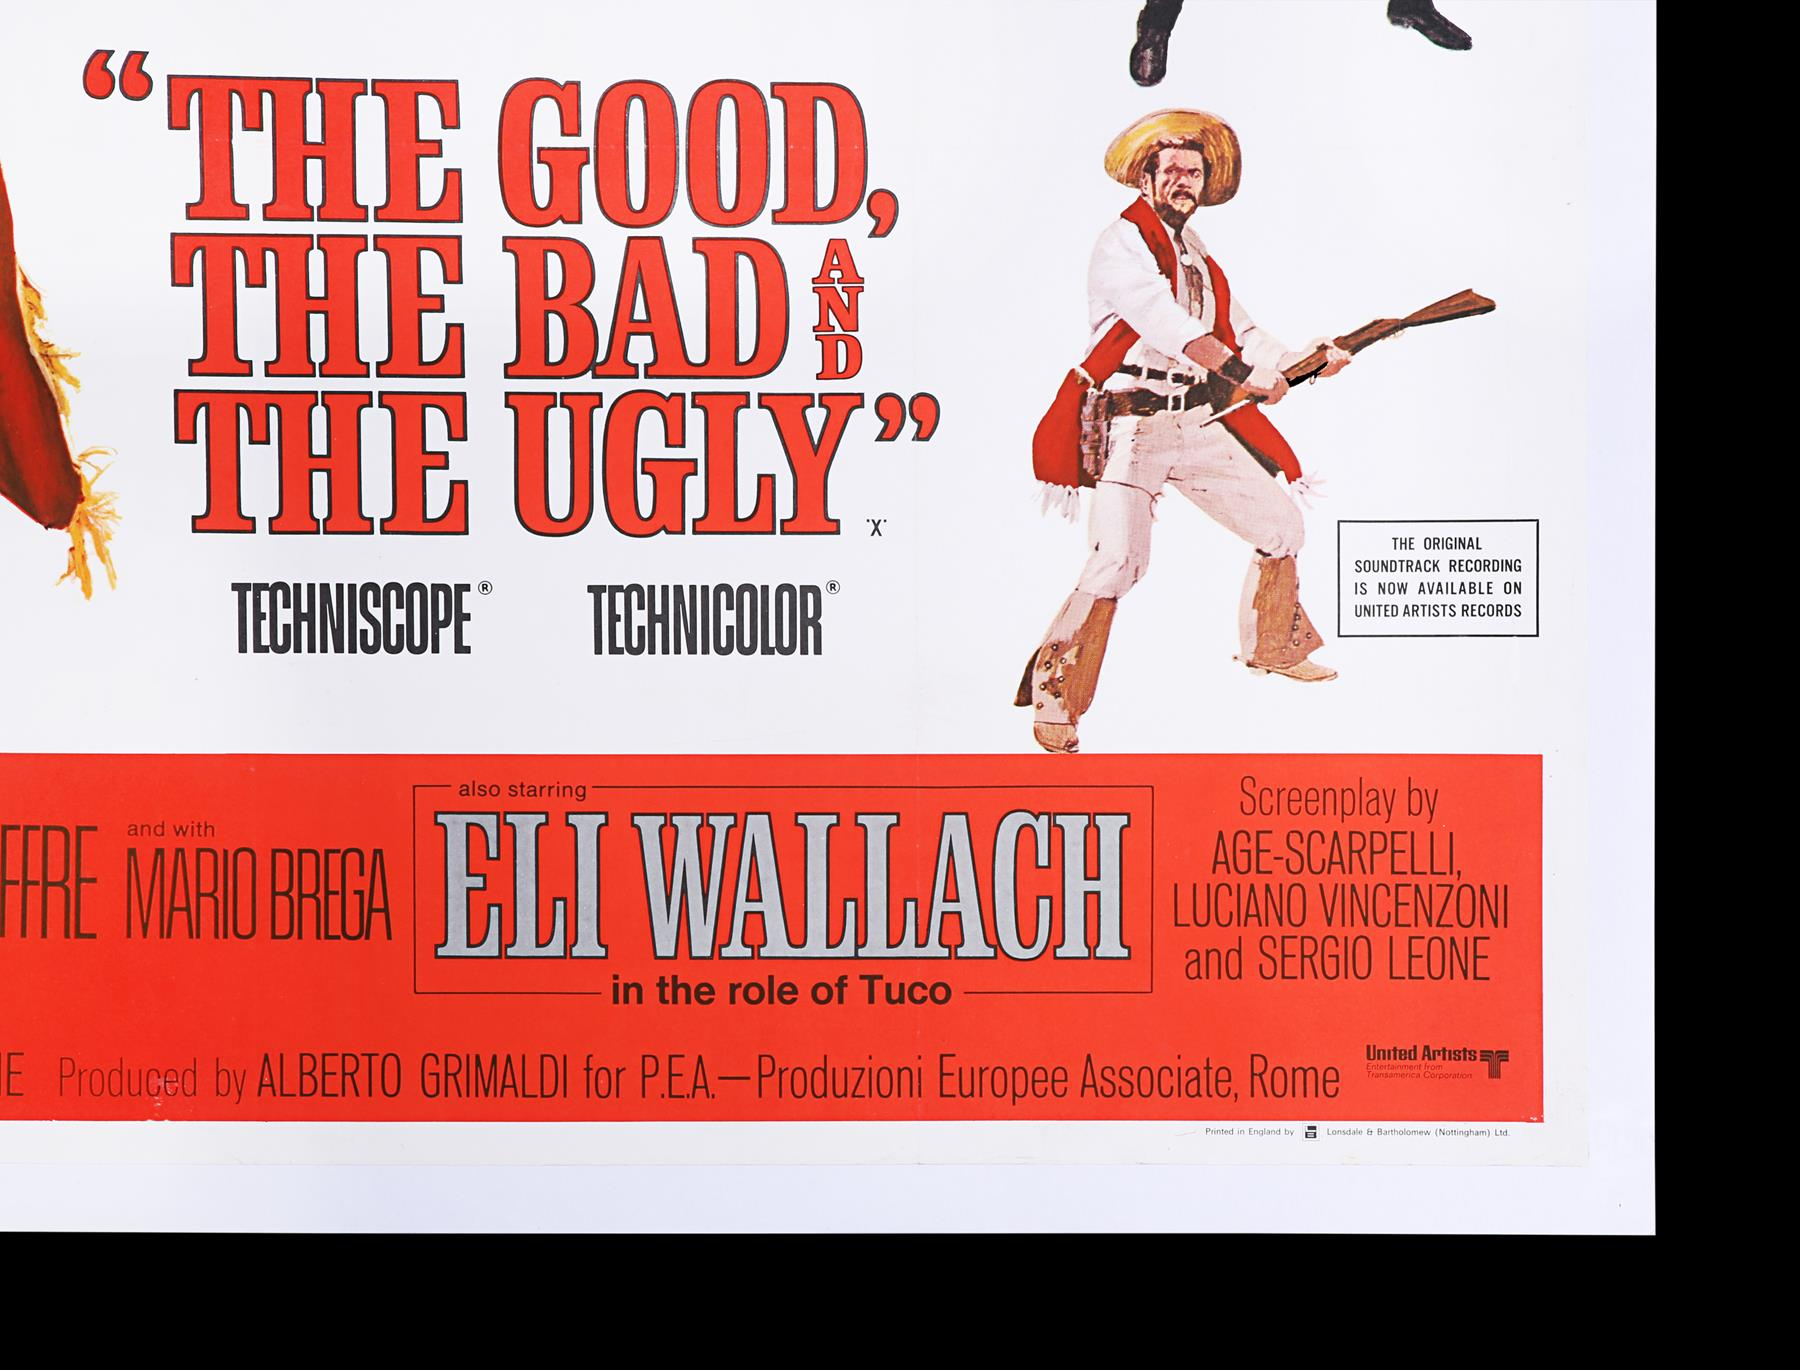 THE GOOD, THE BAD AND THE UGLY (1966) - UK Quad, 1968 - Image 4 of 7